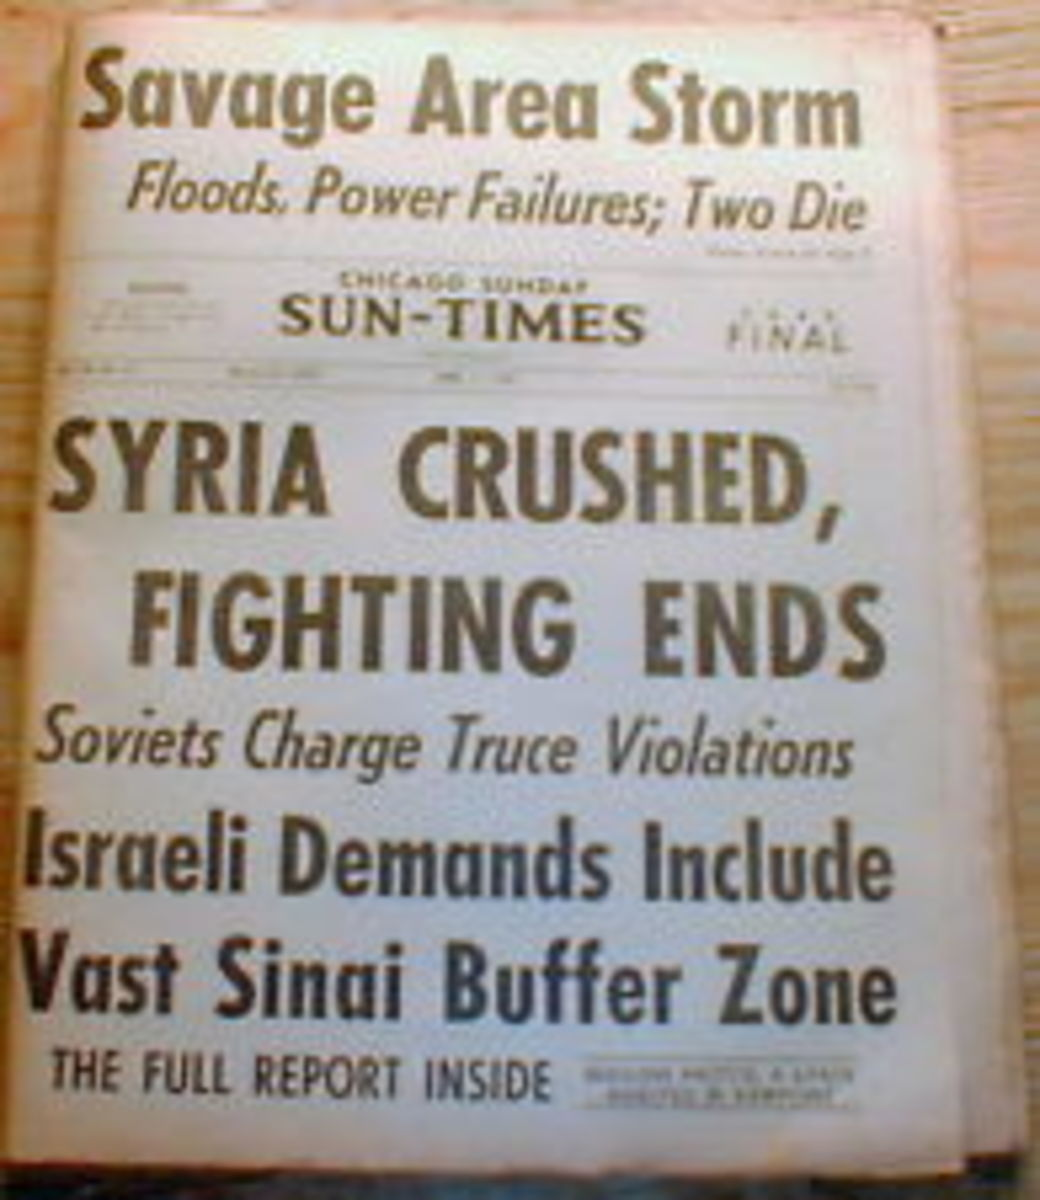 Israel Crushes Syrian Army Headline 1967